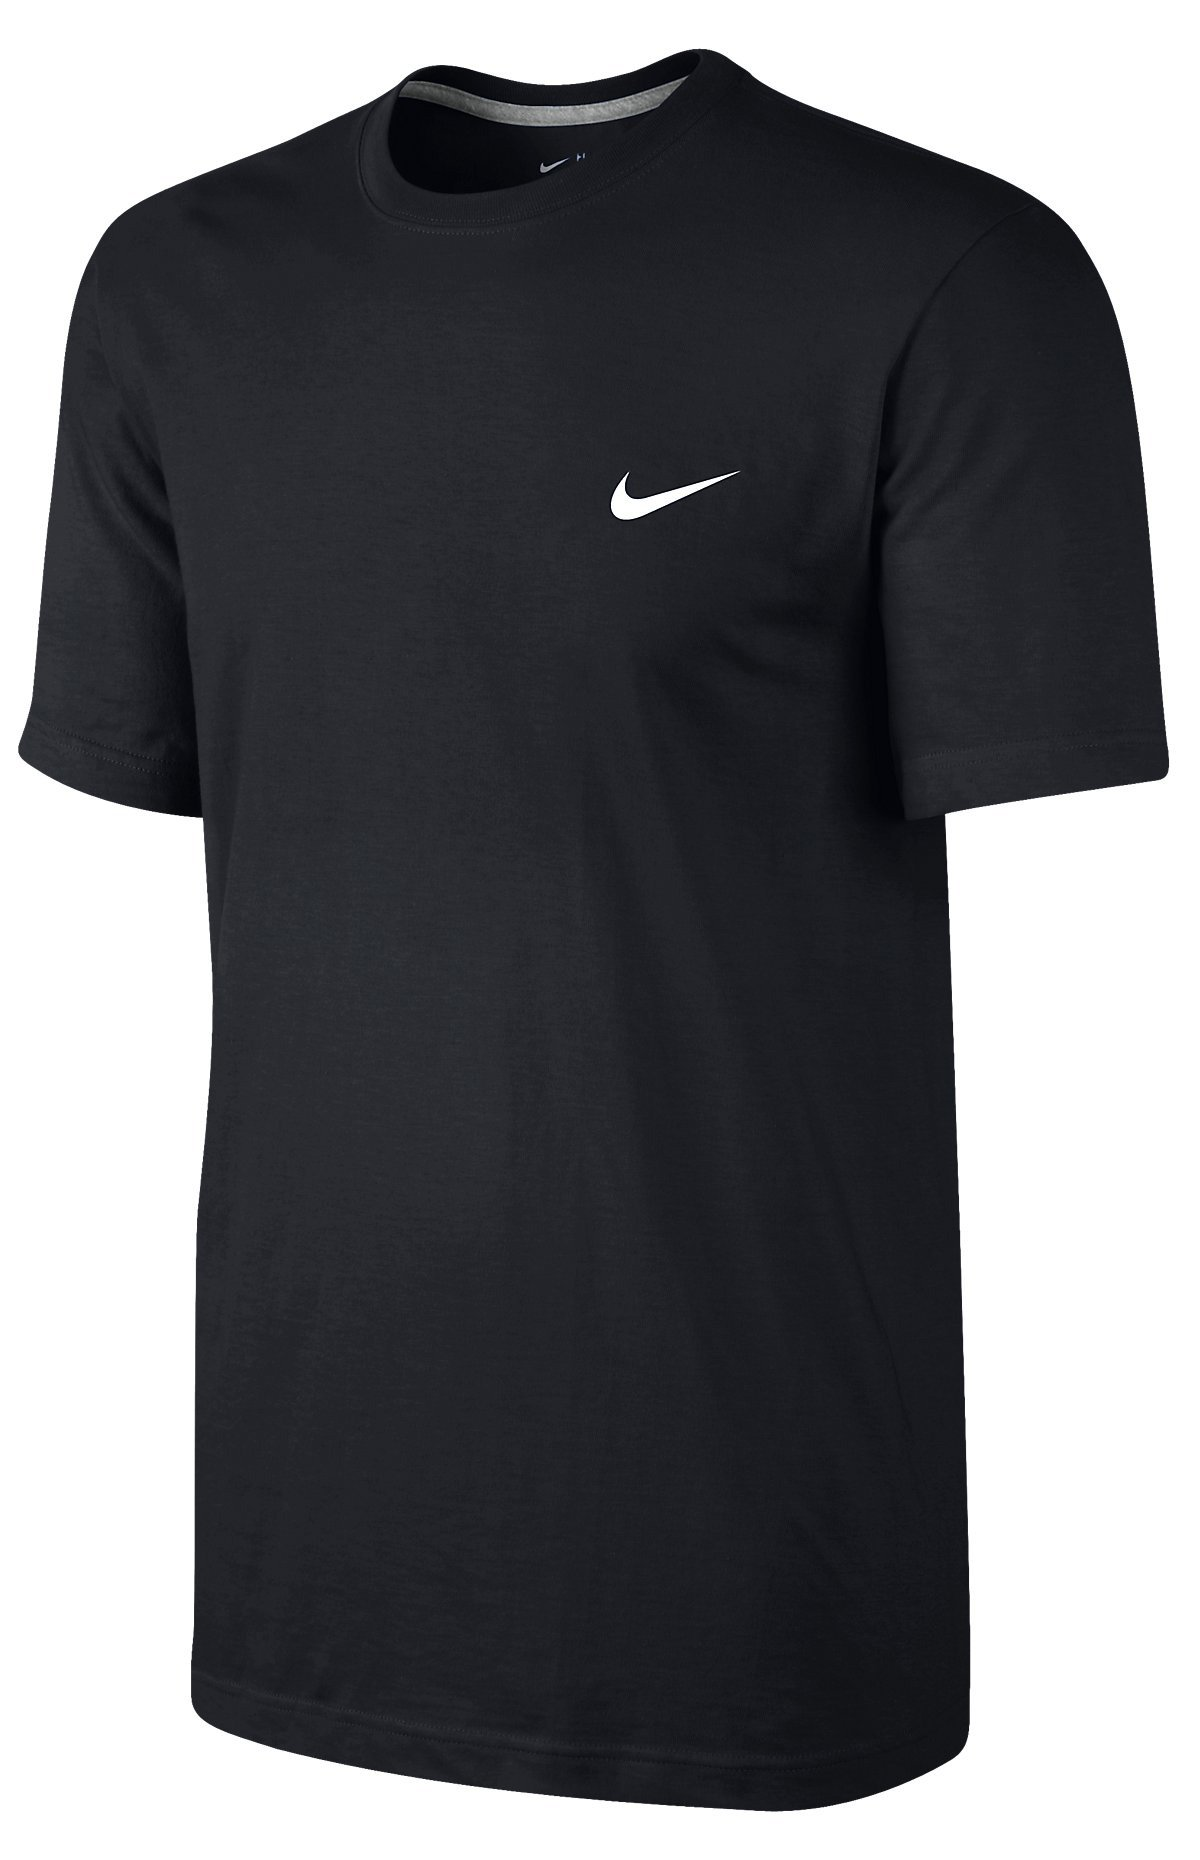 T shirt nike tee embrd swoosh for Nike swoosh logo t shirt